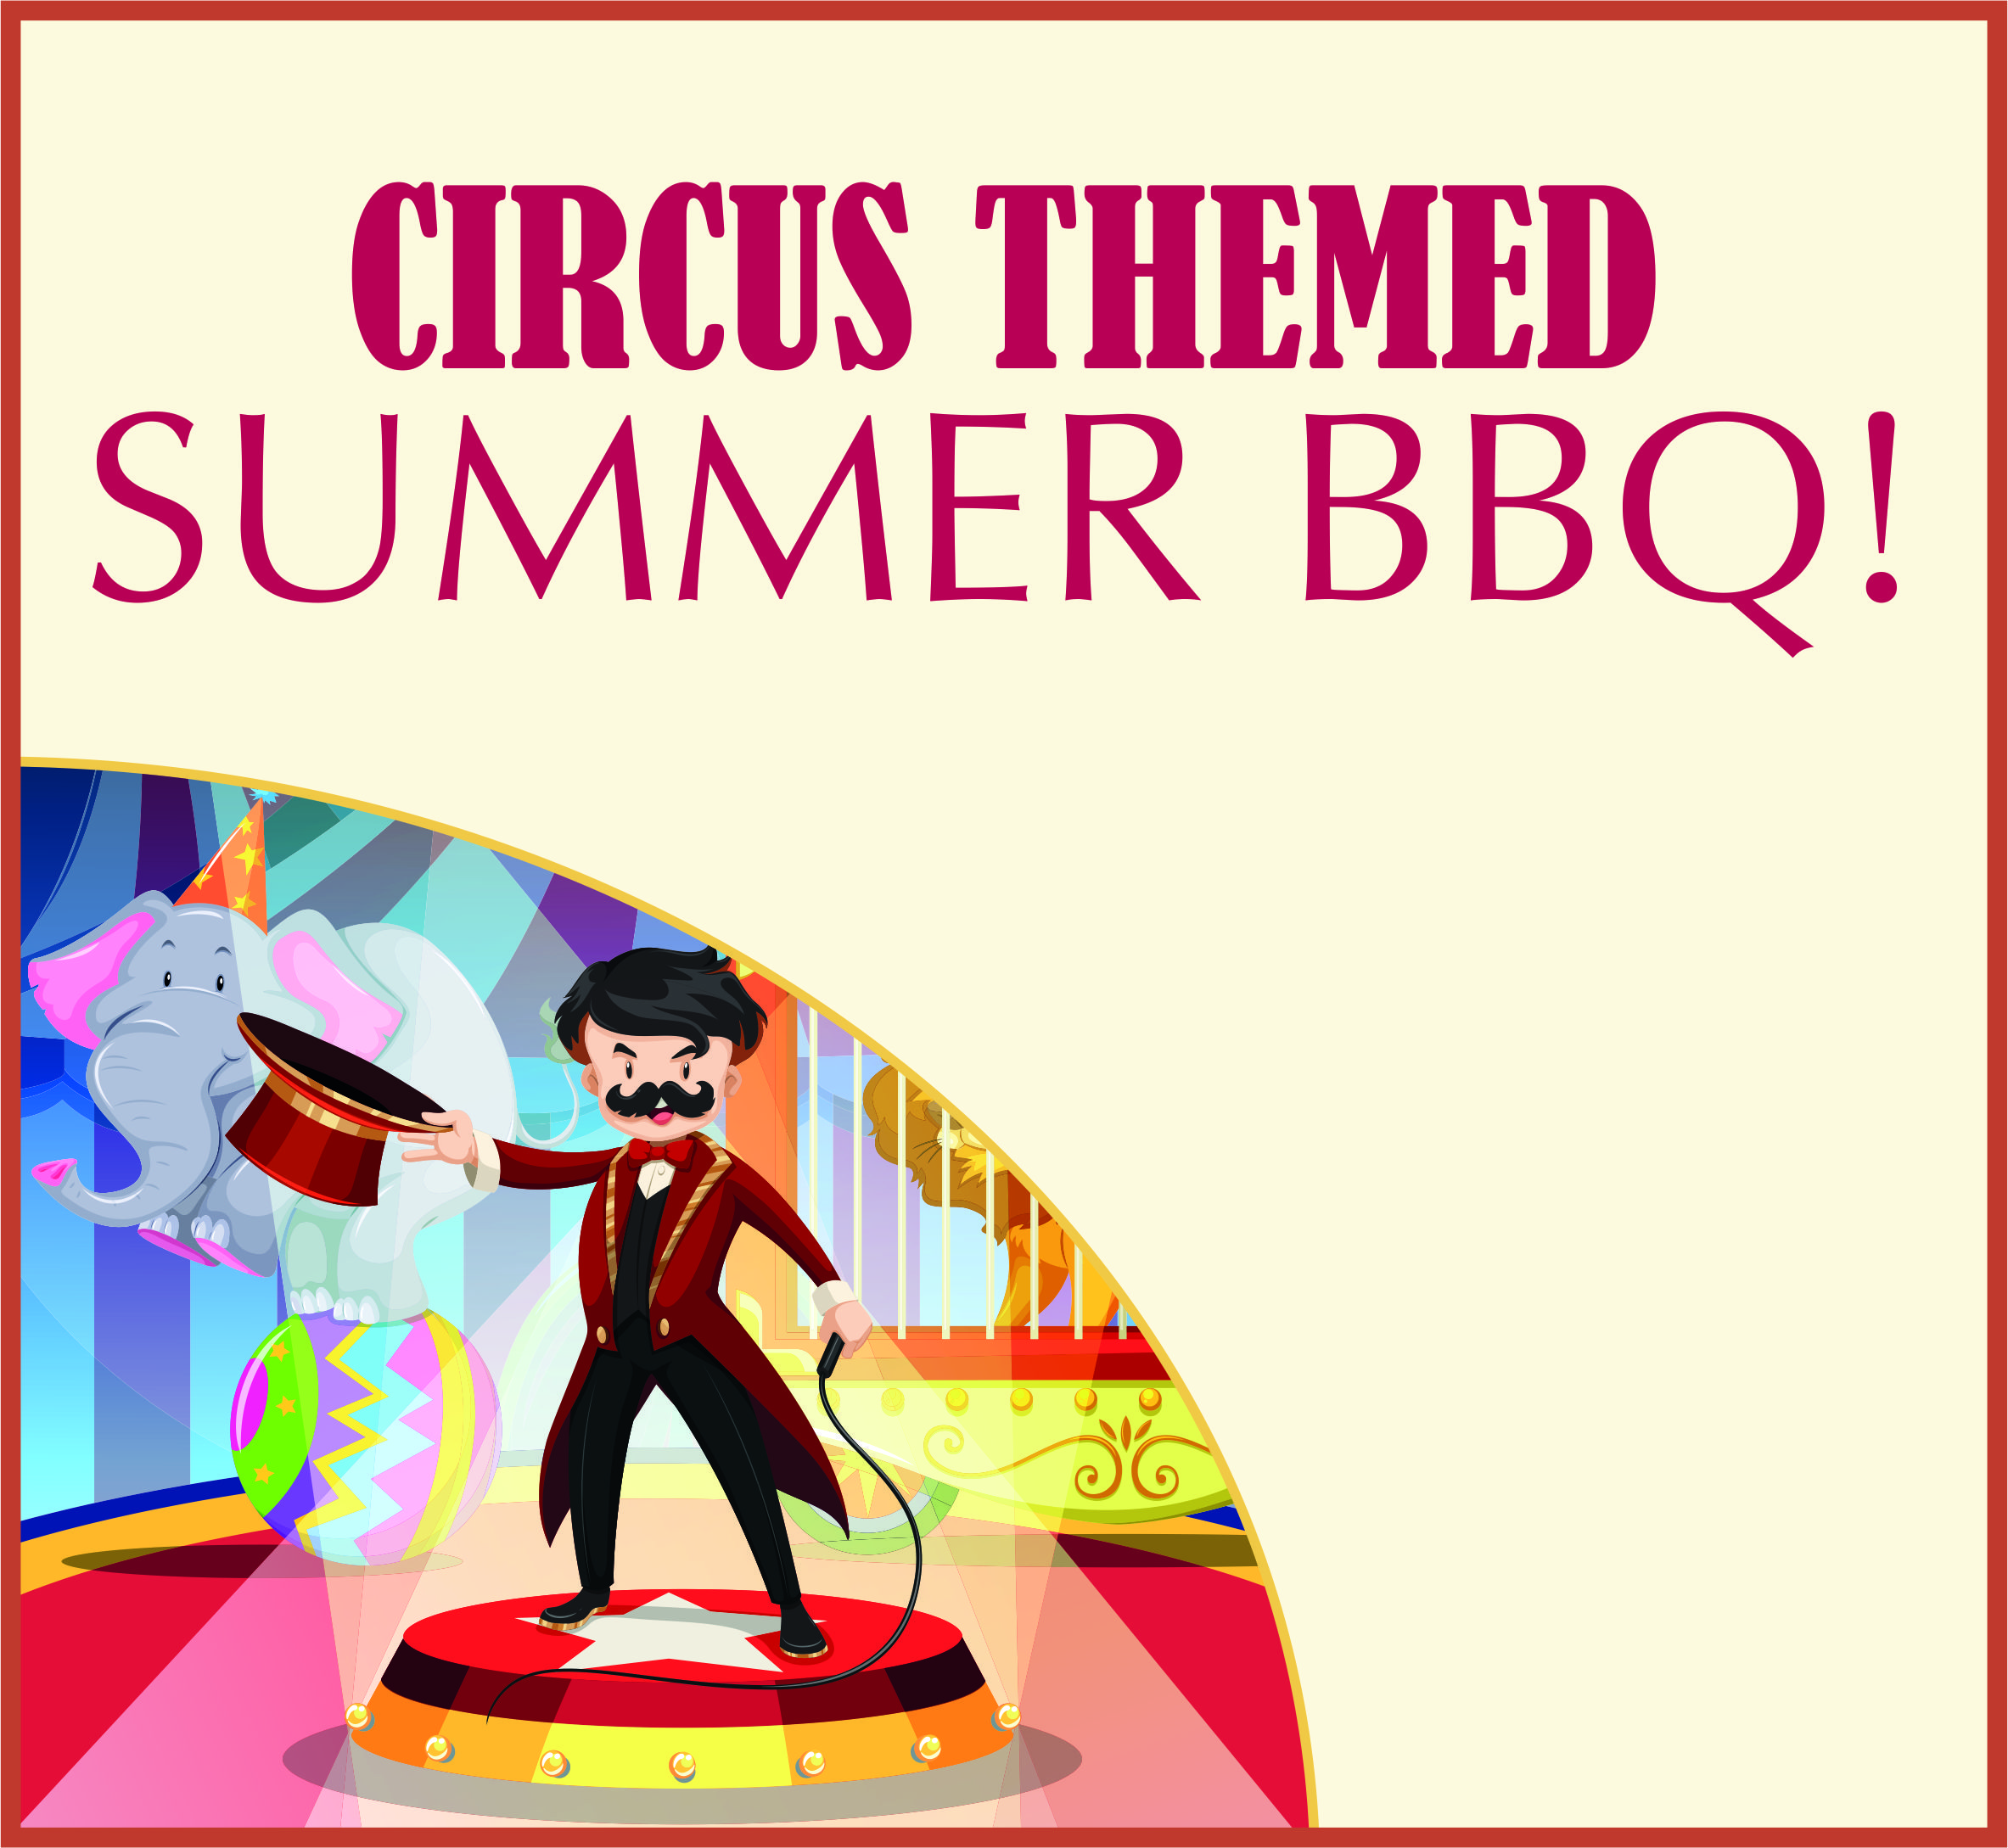 Events Template bbq AB